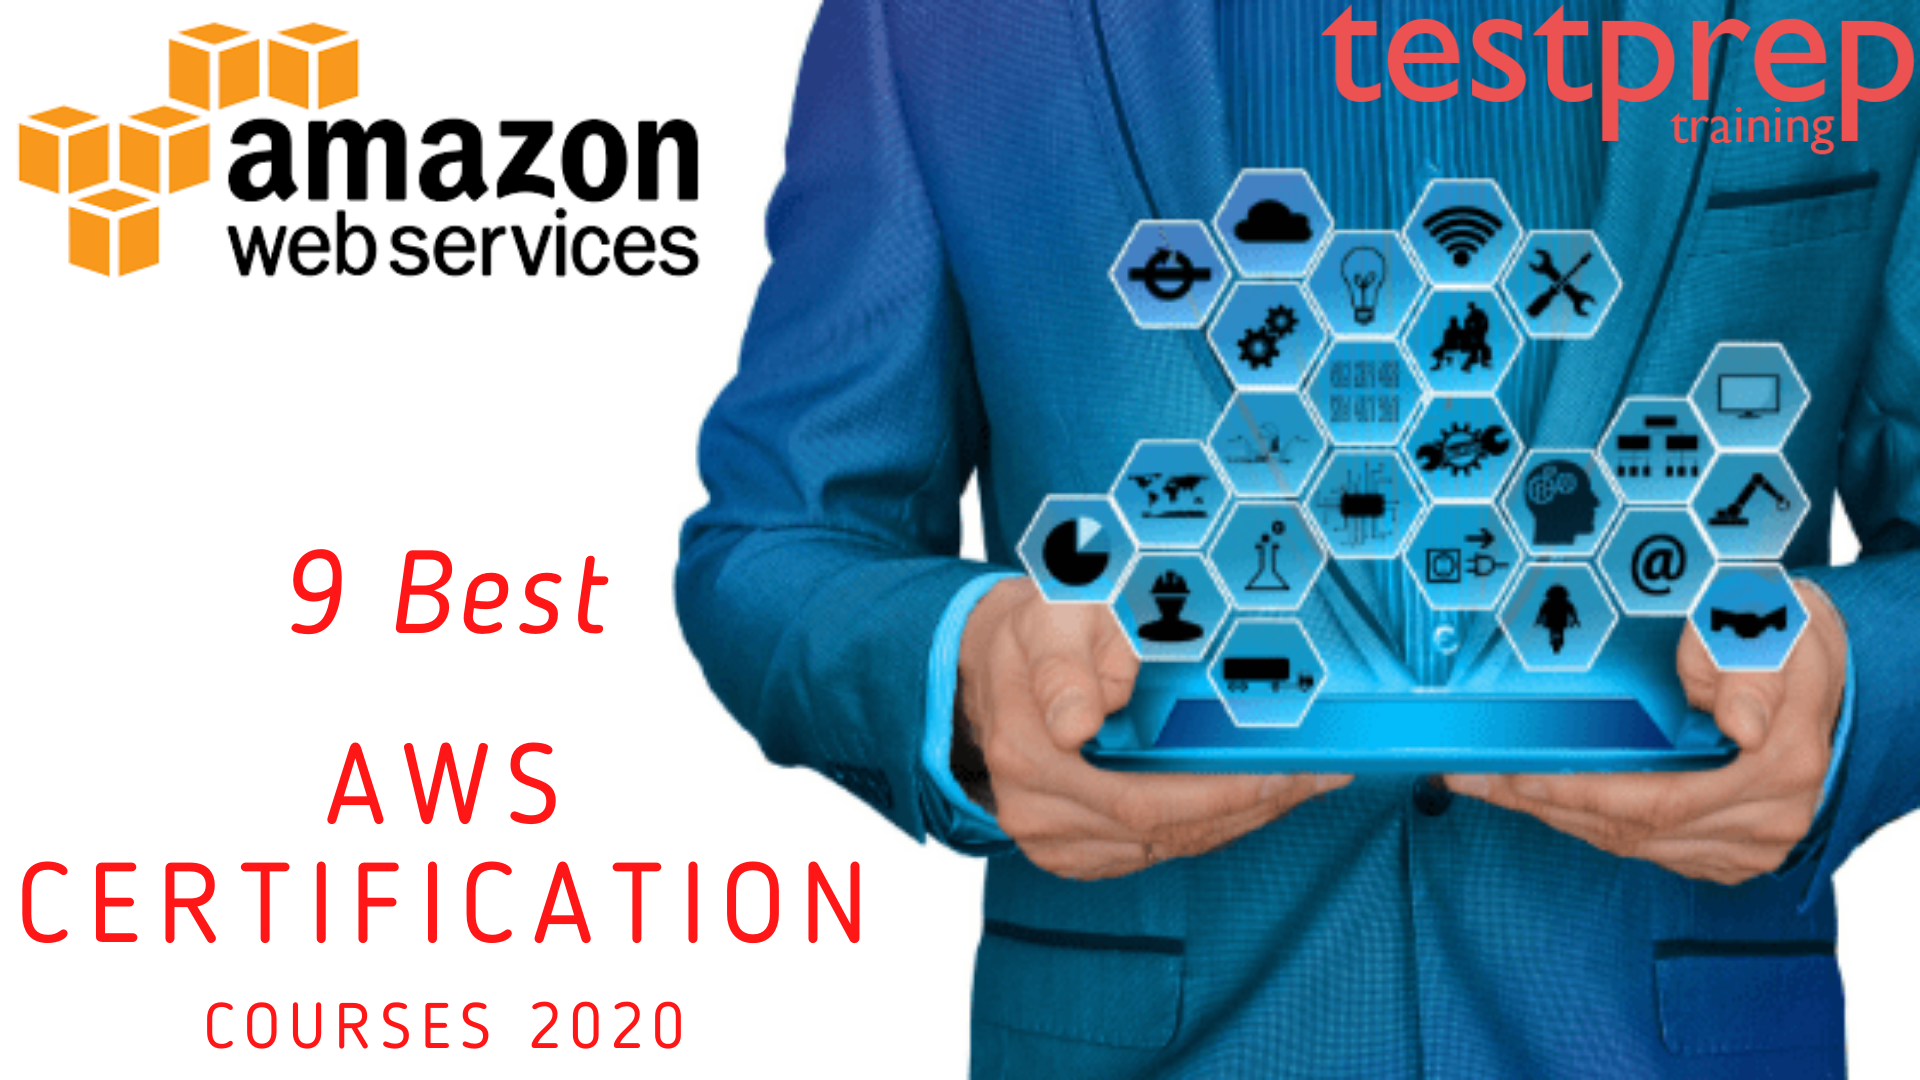 9 Best AWS Certification Courses 2020